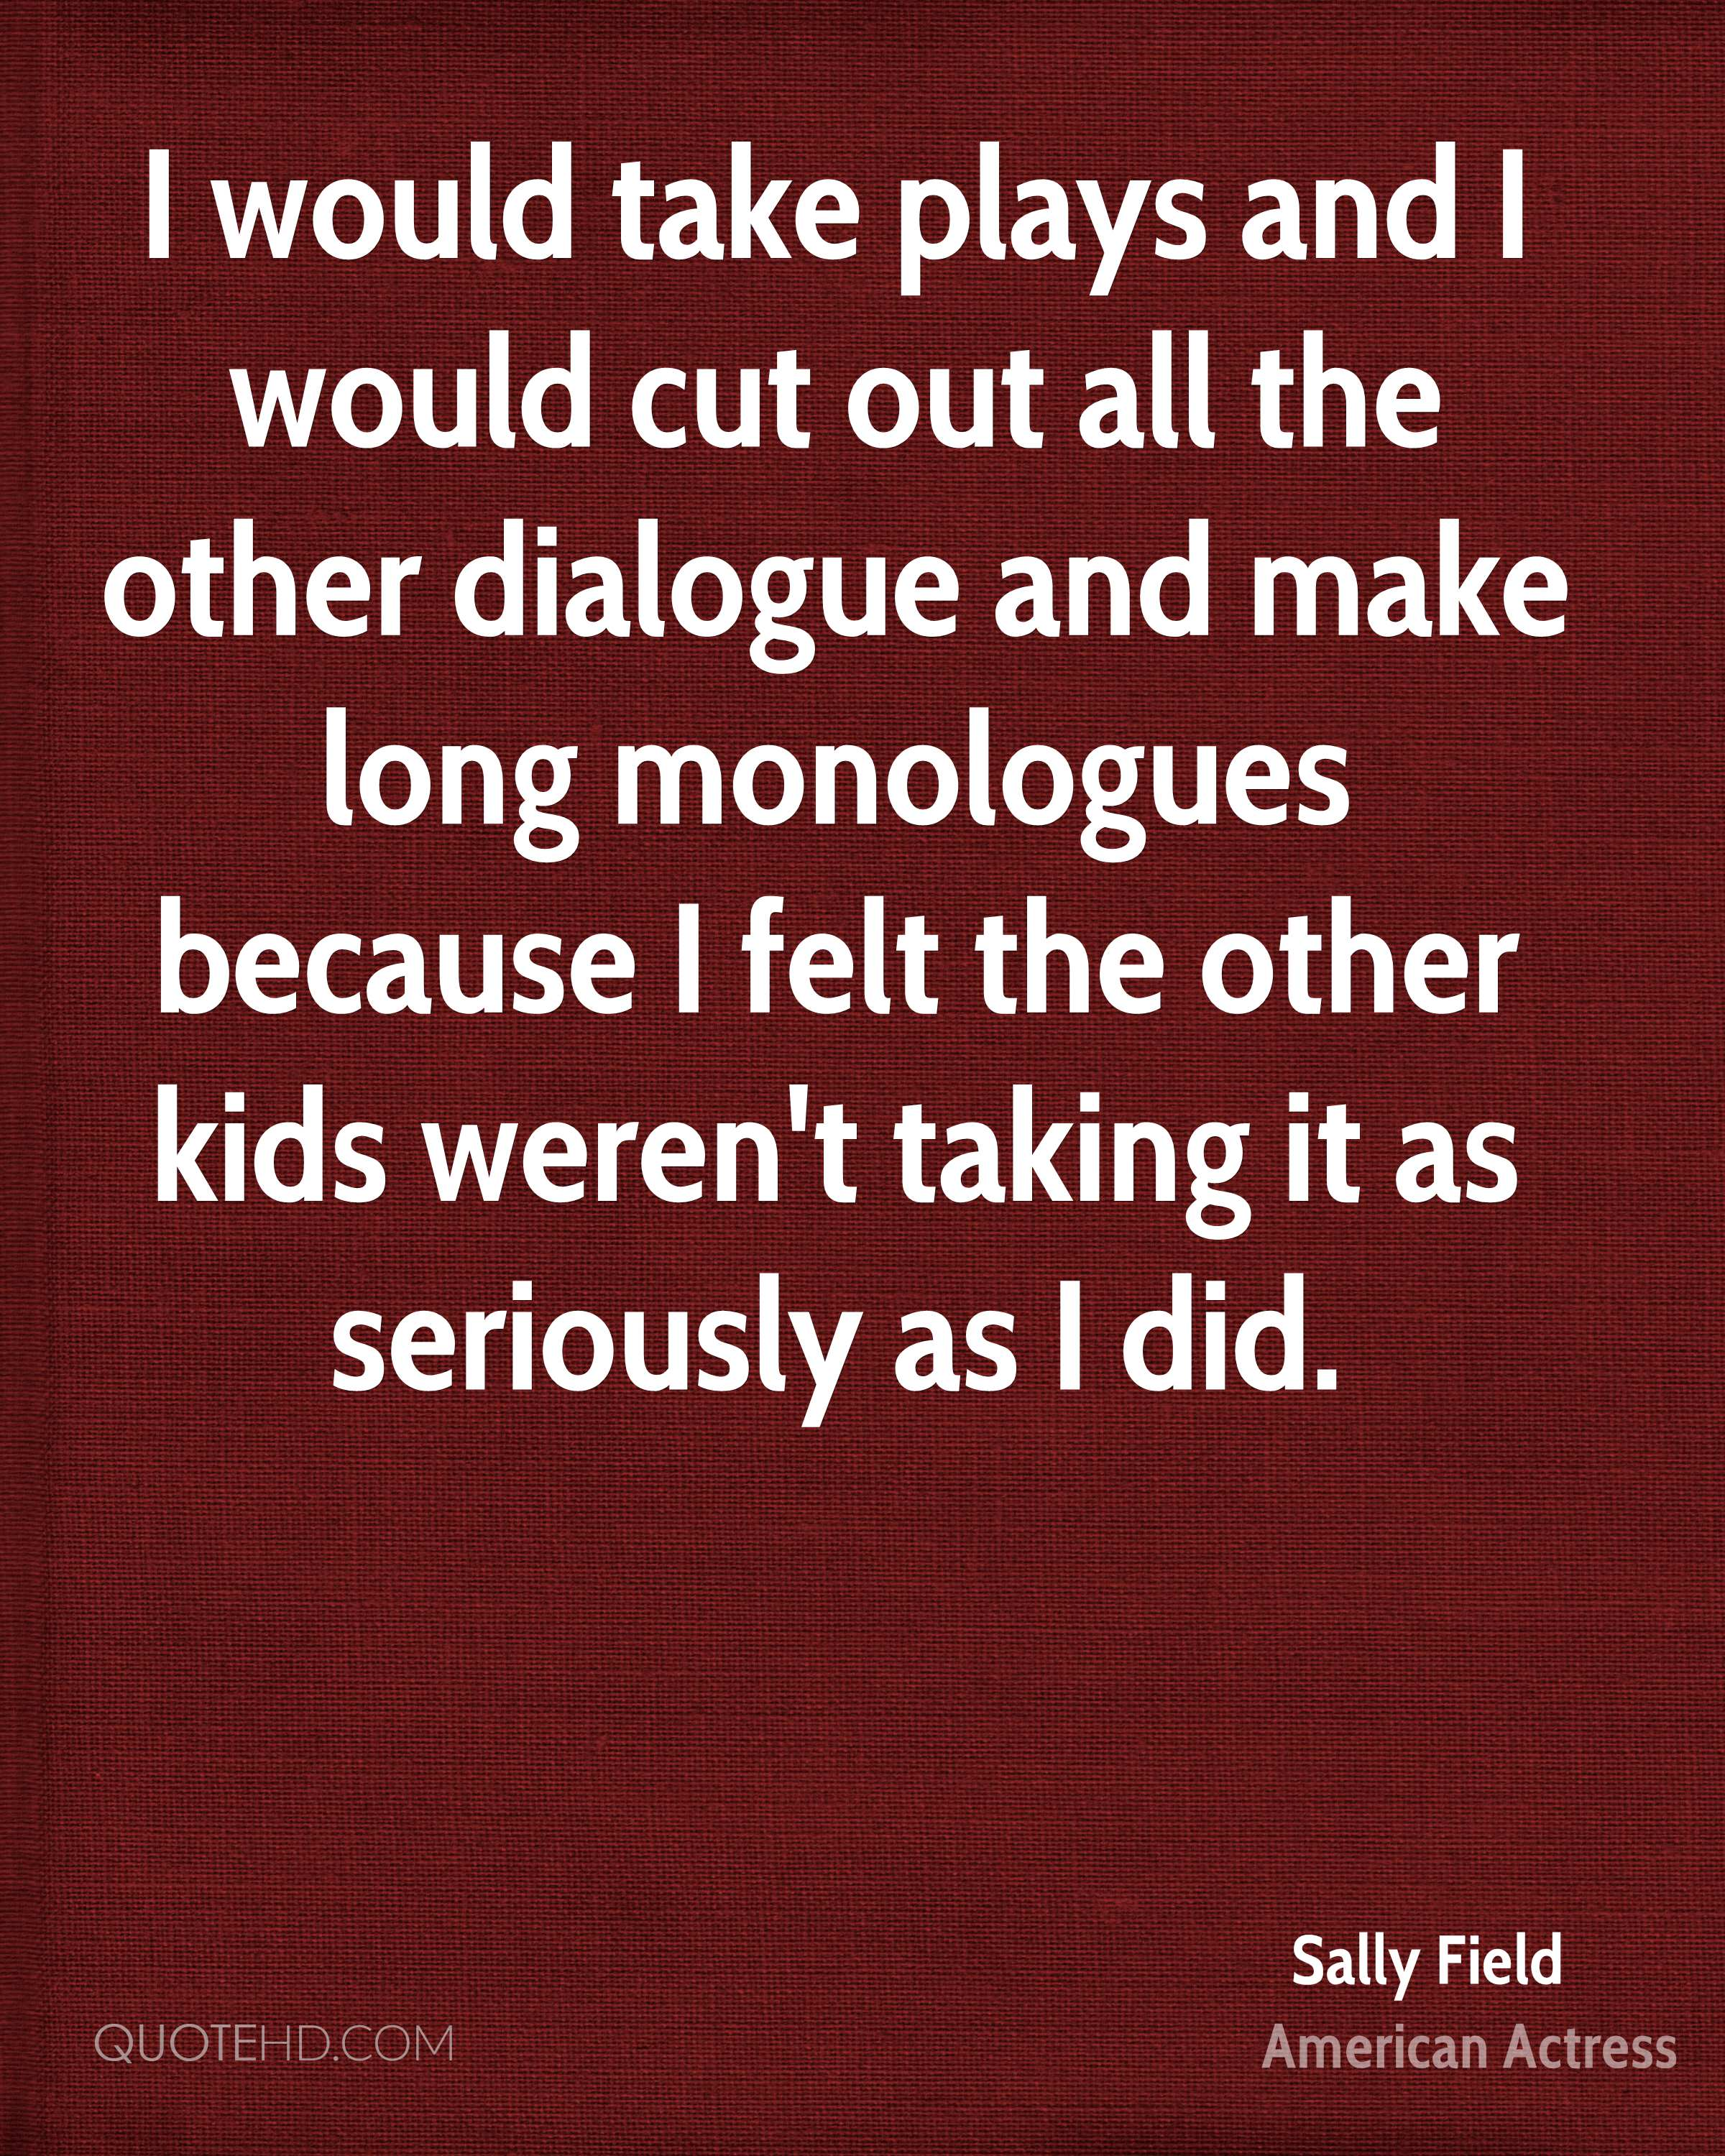 I would take plays and I would cut out all the other dialogue and make long monologues because I felt the other kids weren't taking it as seriously as I did.